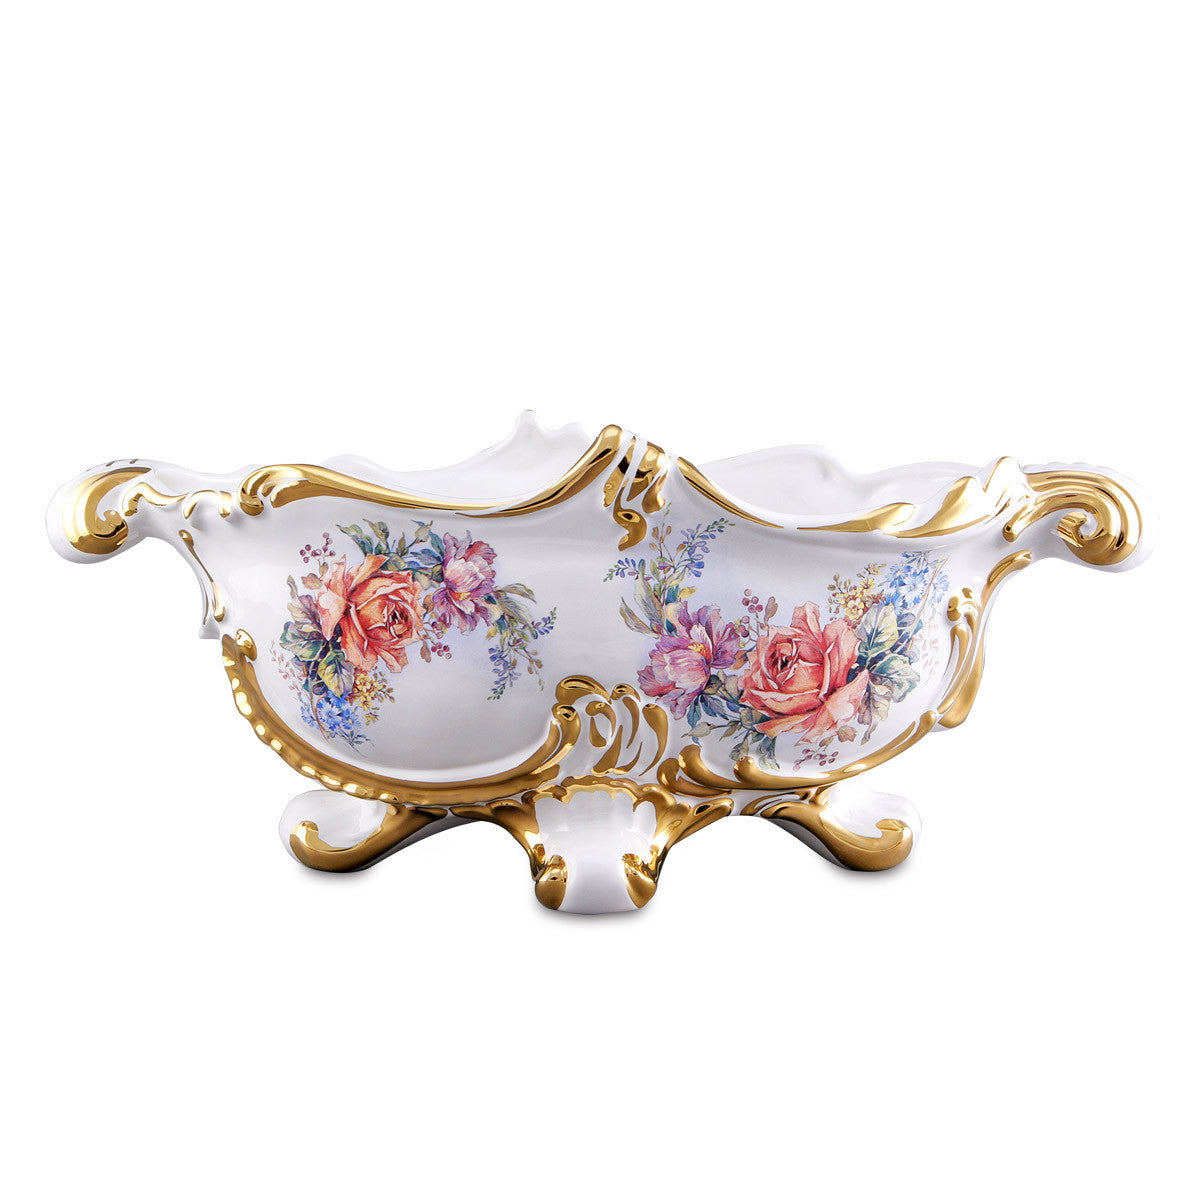 Baroque bowl center table with floral design